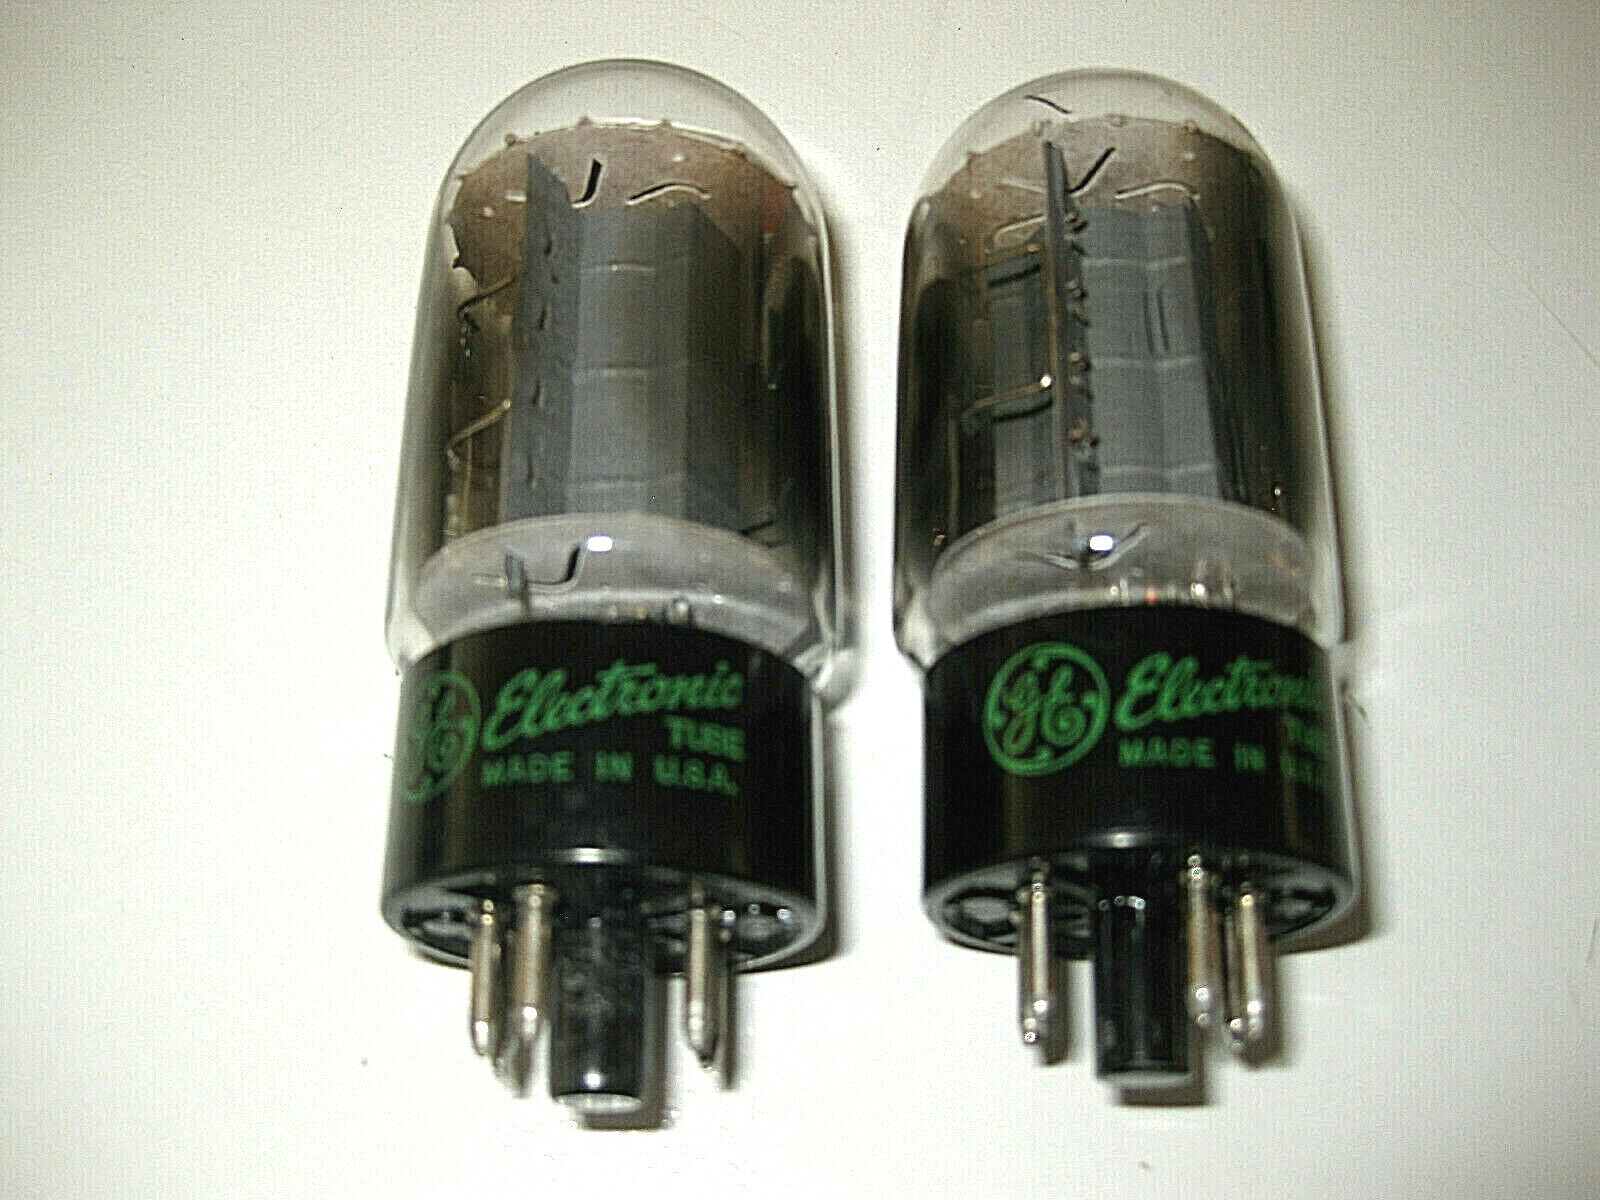 6L6 GT General Electric made in USA 1 Pärchen